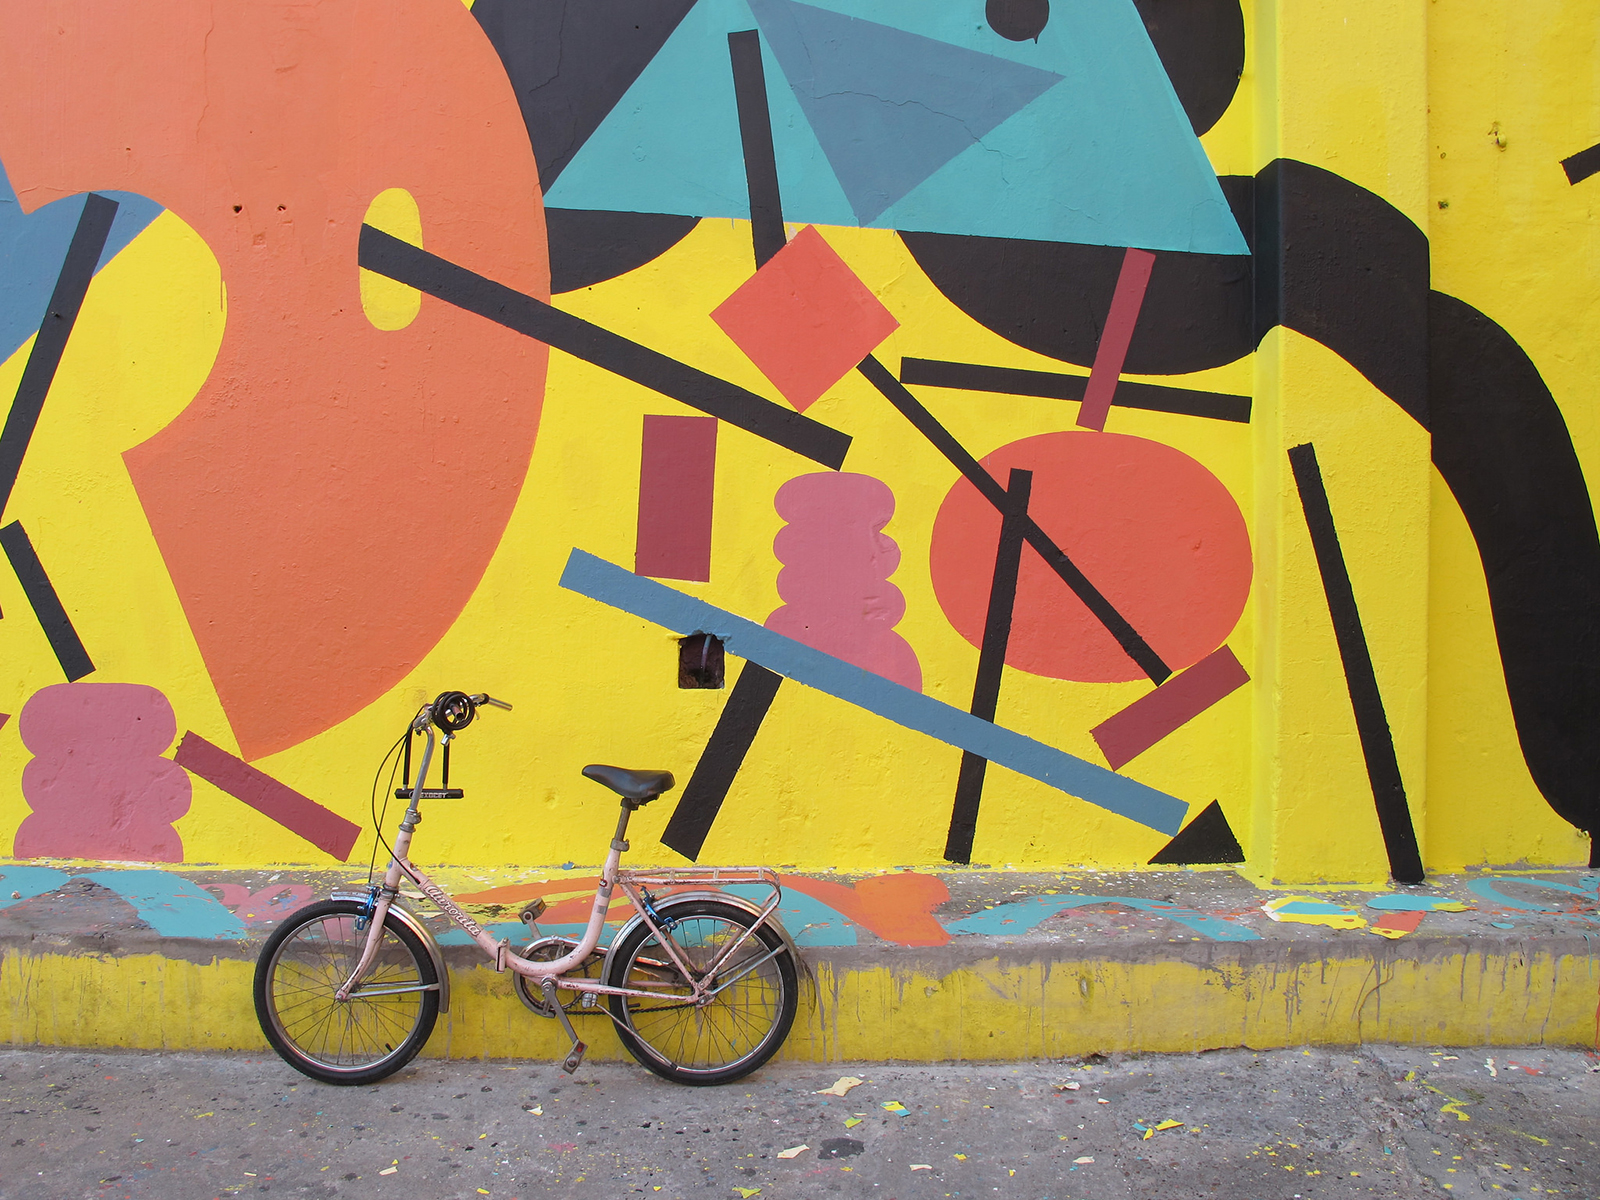 chu-new-mural-in-buenos-aires-07